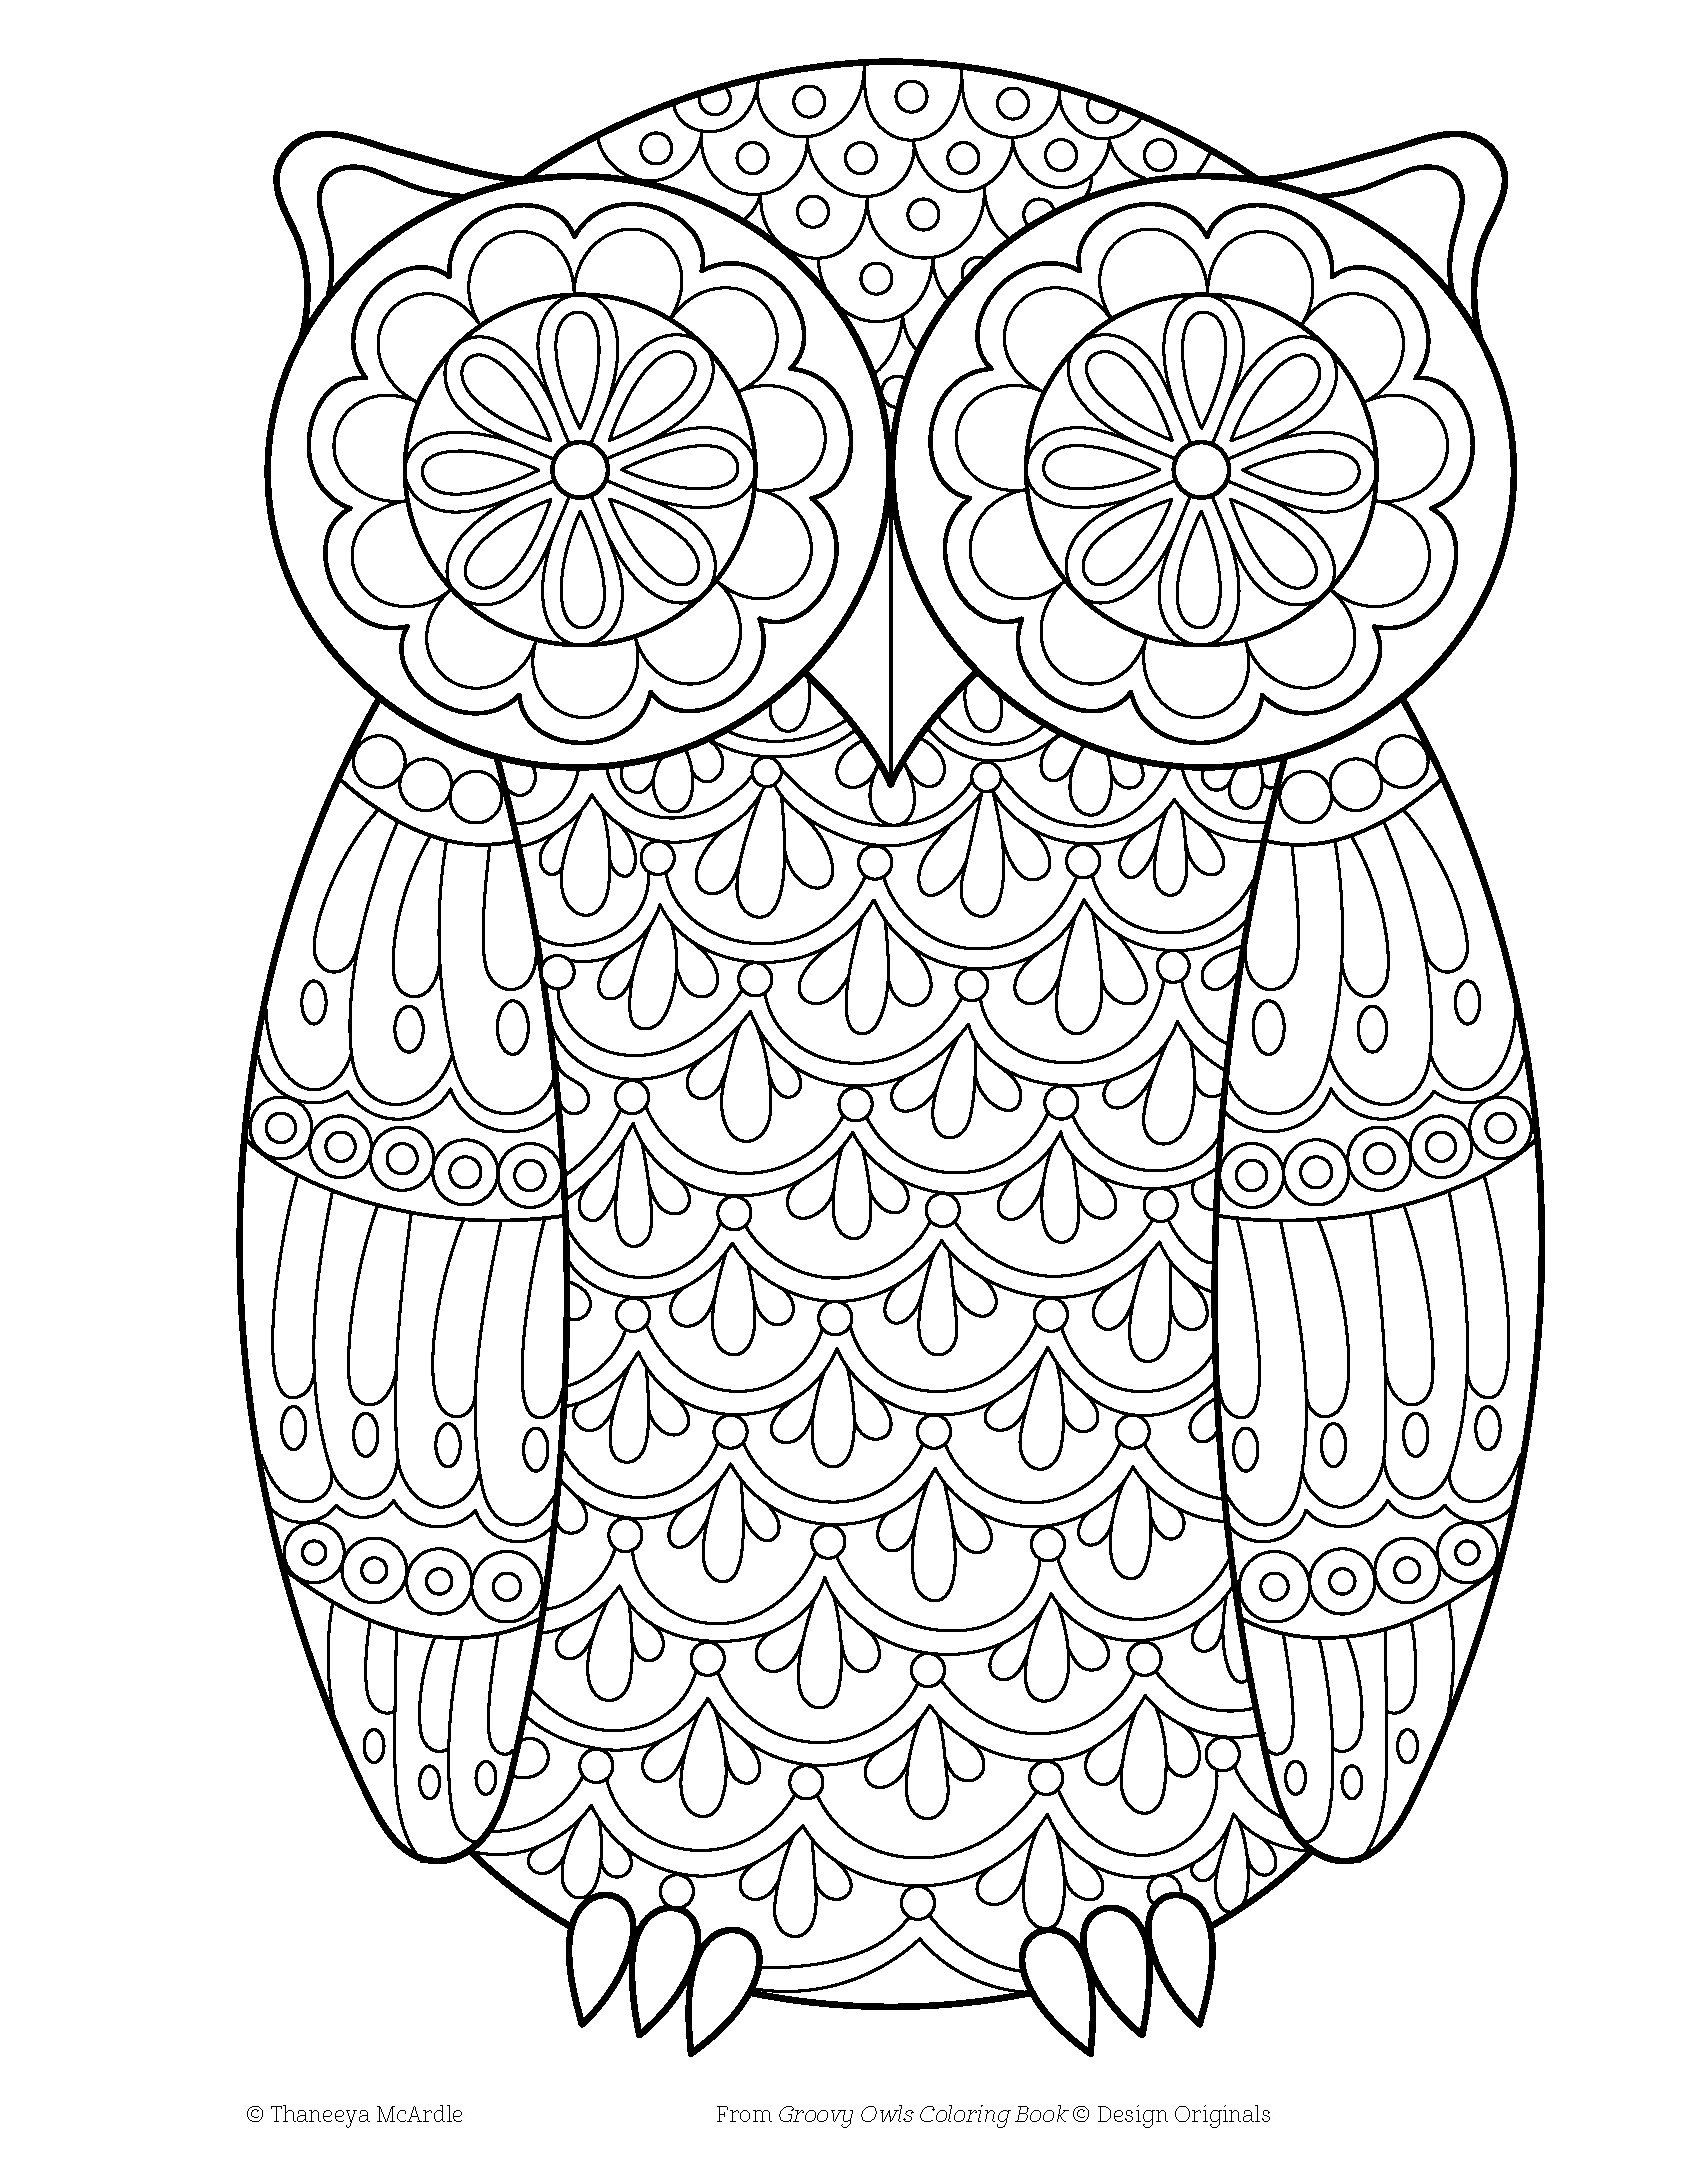 Amazon Com Groovy Owls Coloring Book Coloring Is Fun Design Originals 9781497202078 Thaneeya Mcardle Owl Coloring Pages Coloring Books Coloring Pages